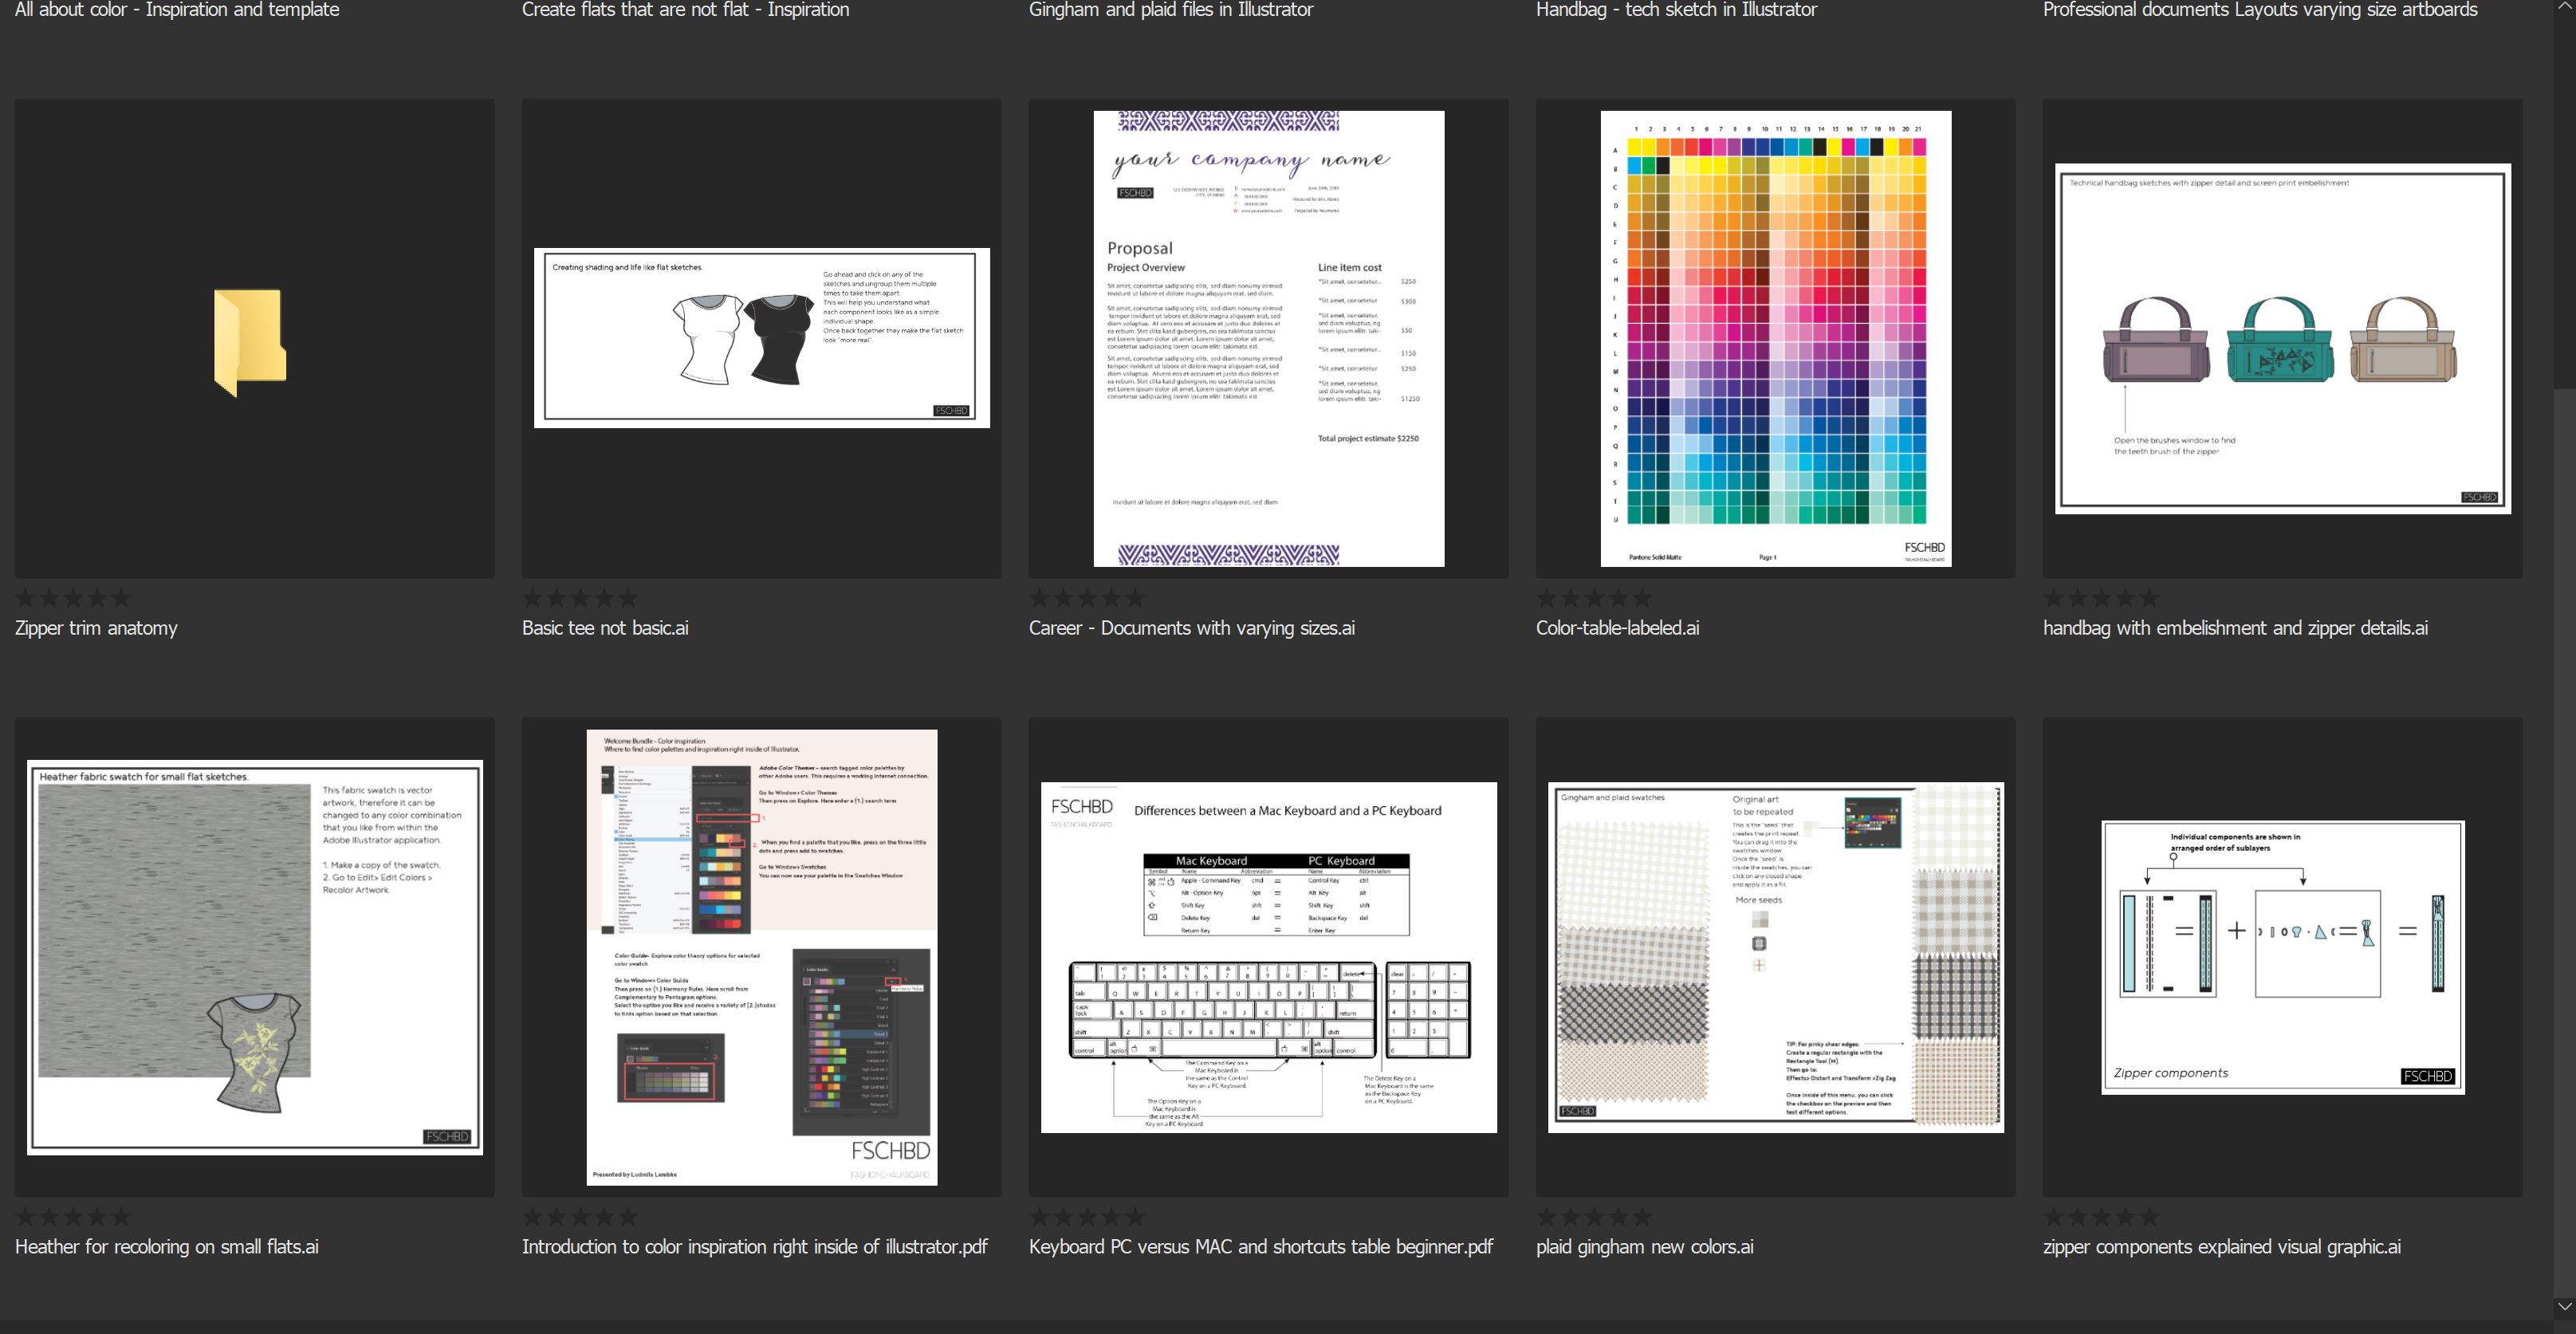 this image shows the illustrator flat sketches, color tables, illustrator shortcut list and other free textile design resources